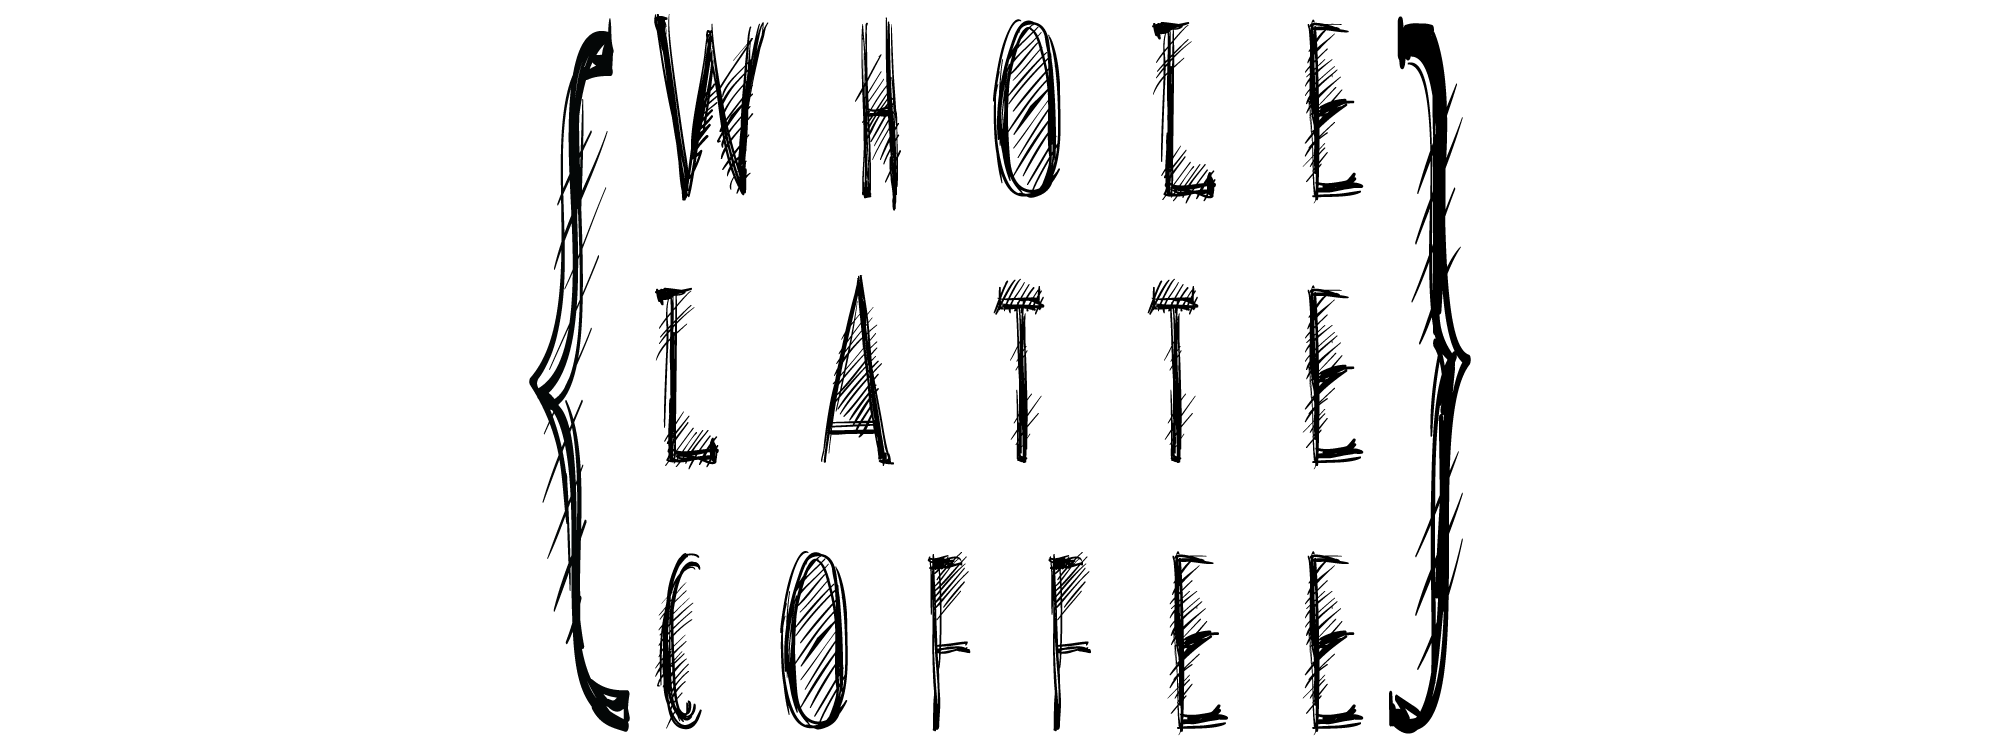 Whole_Latte_Coffee-header